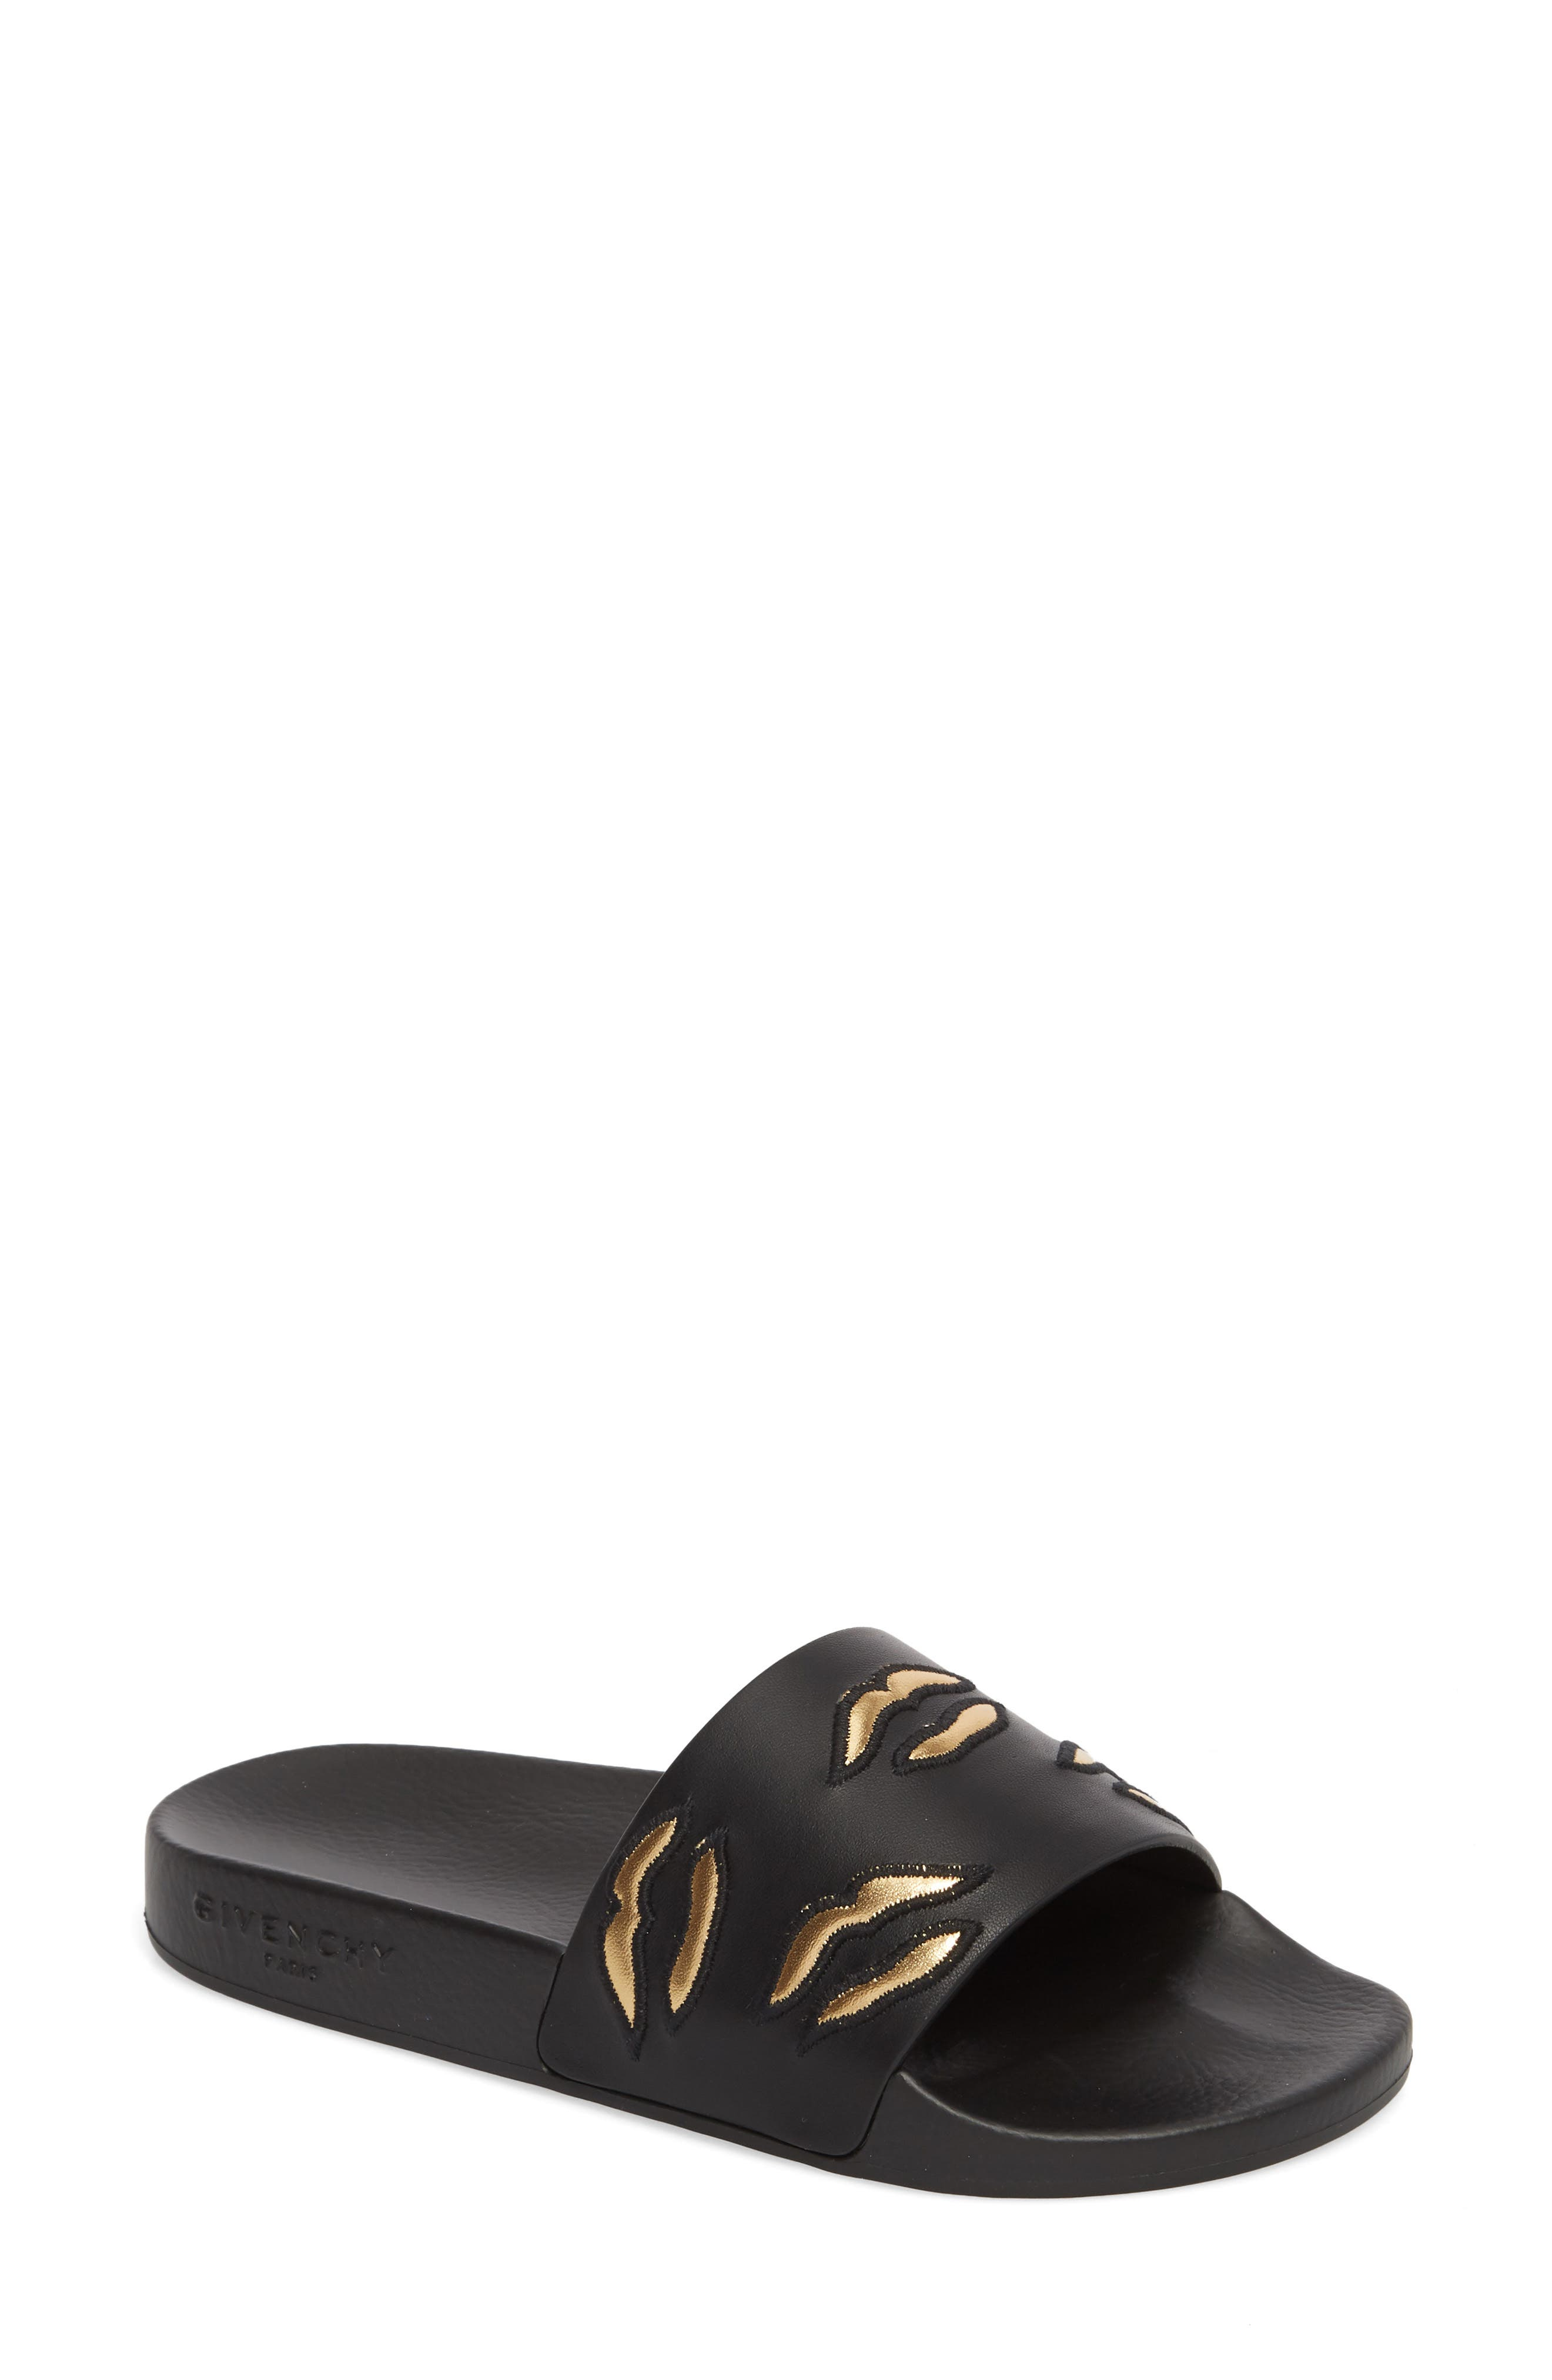 Givenchy Kiss Slide Sandal (Women)